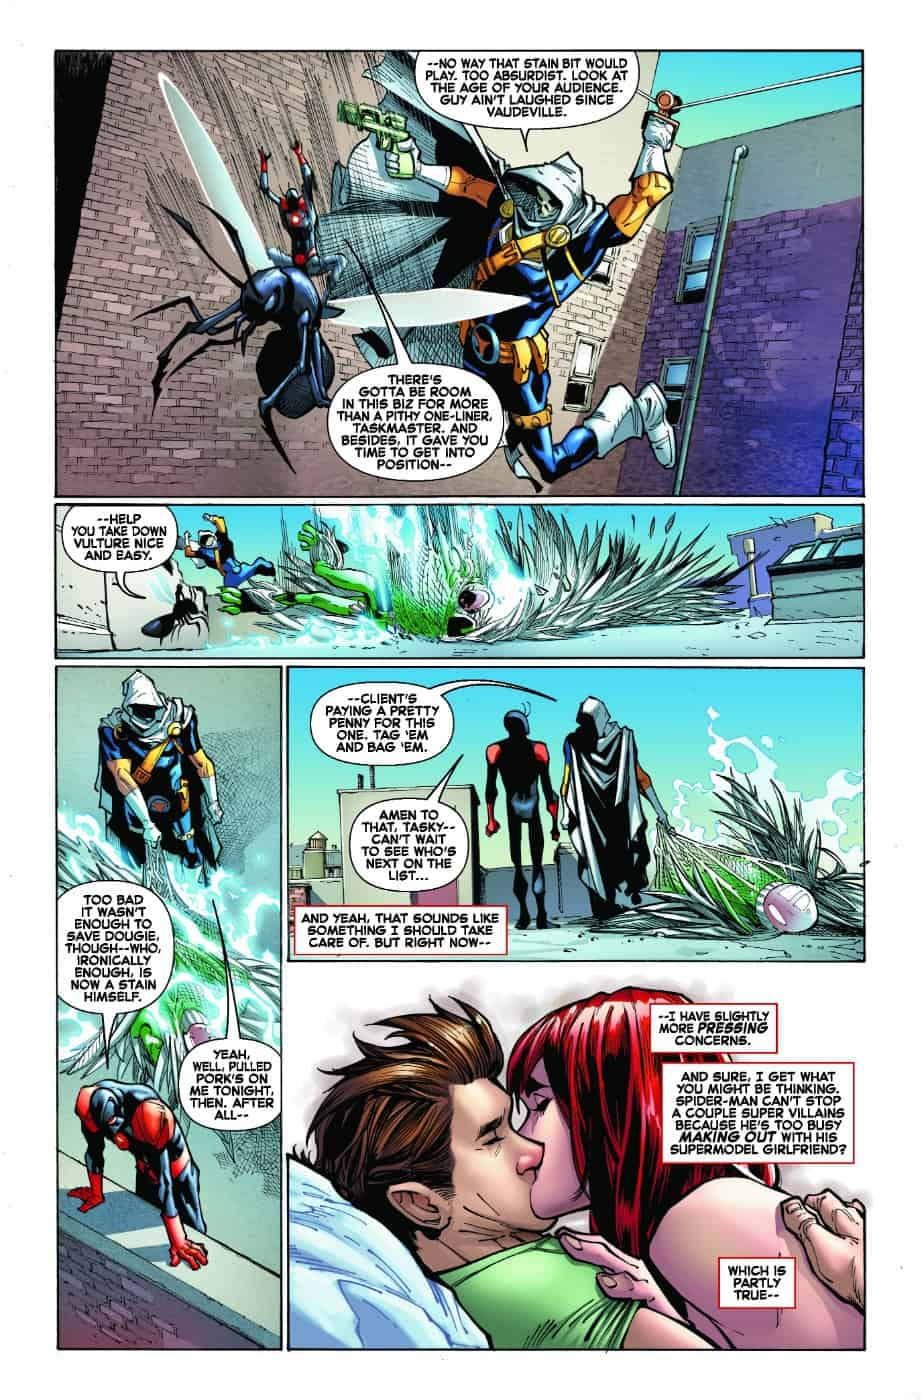 AMAZING SPIDER-MAN #6 page 6